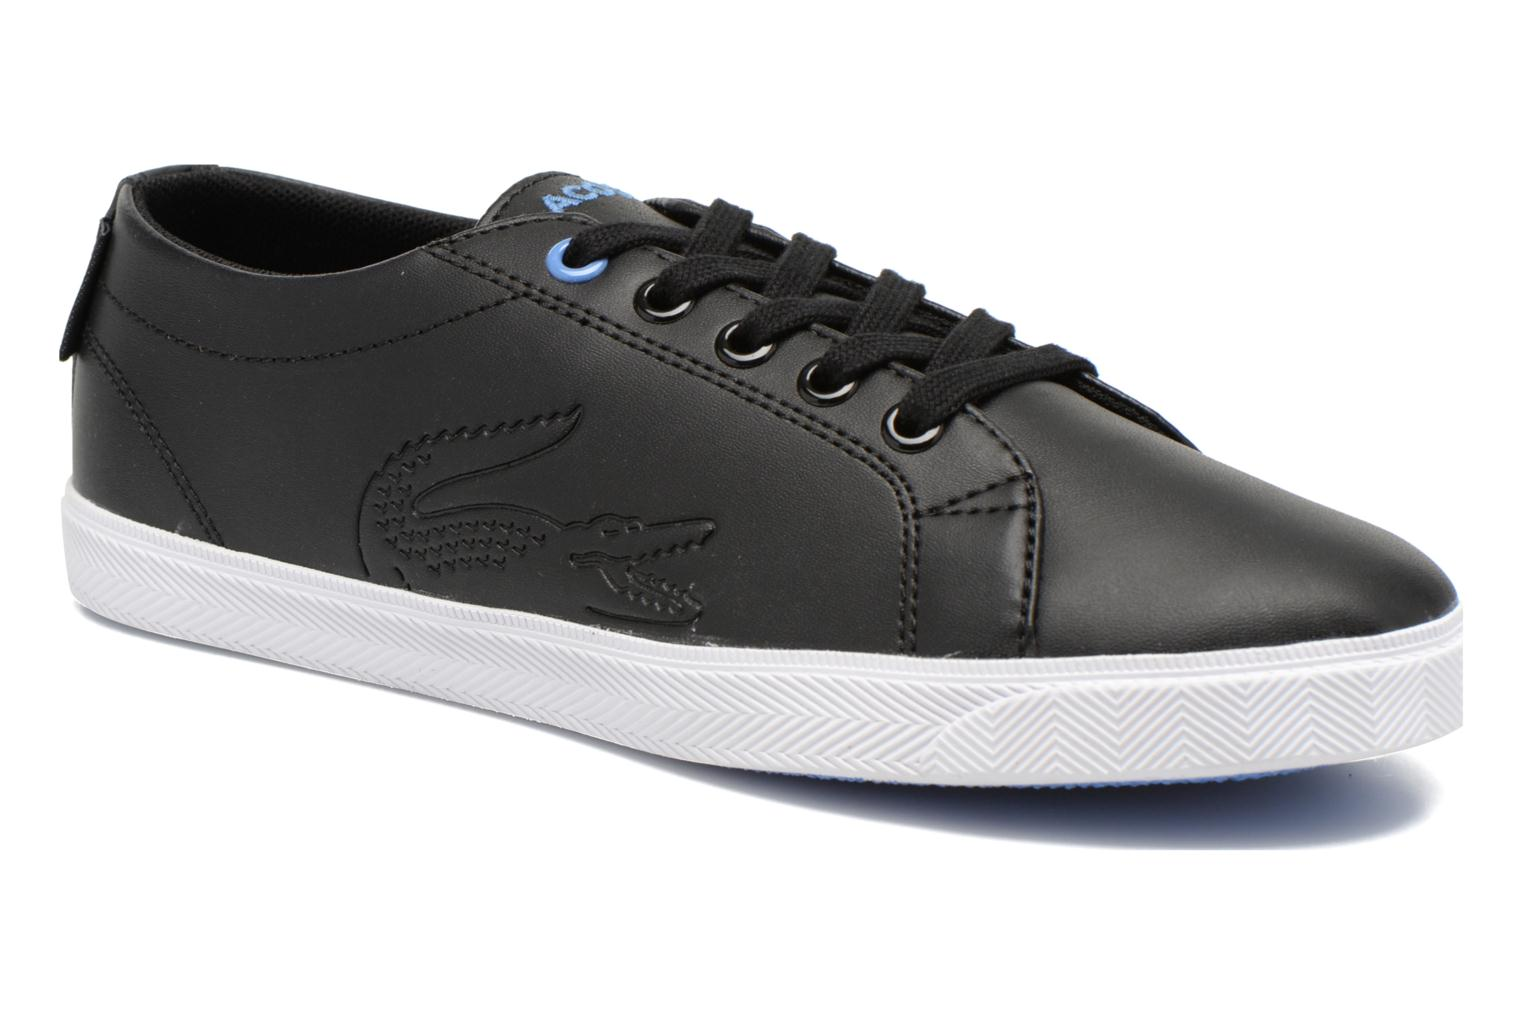 Sneakers Marcel Lace Up 116 2 by Lacoste